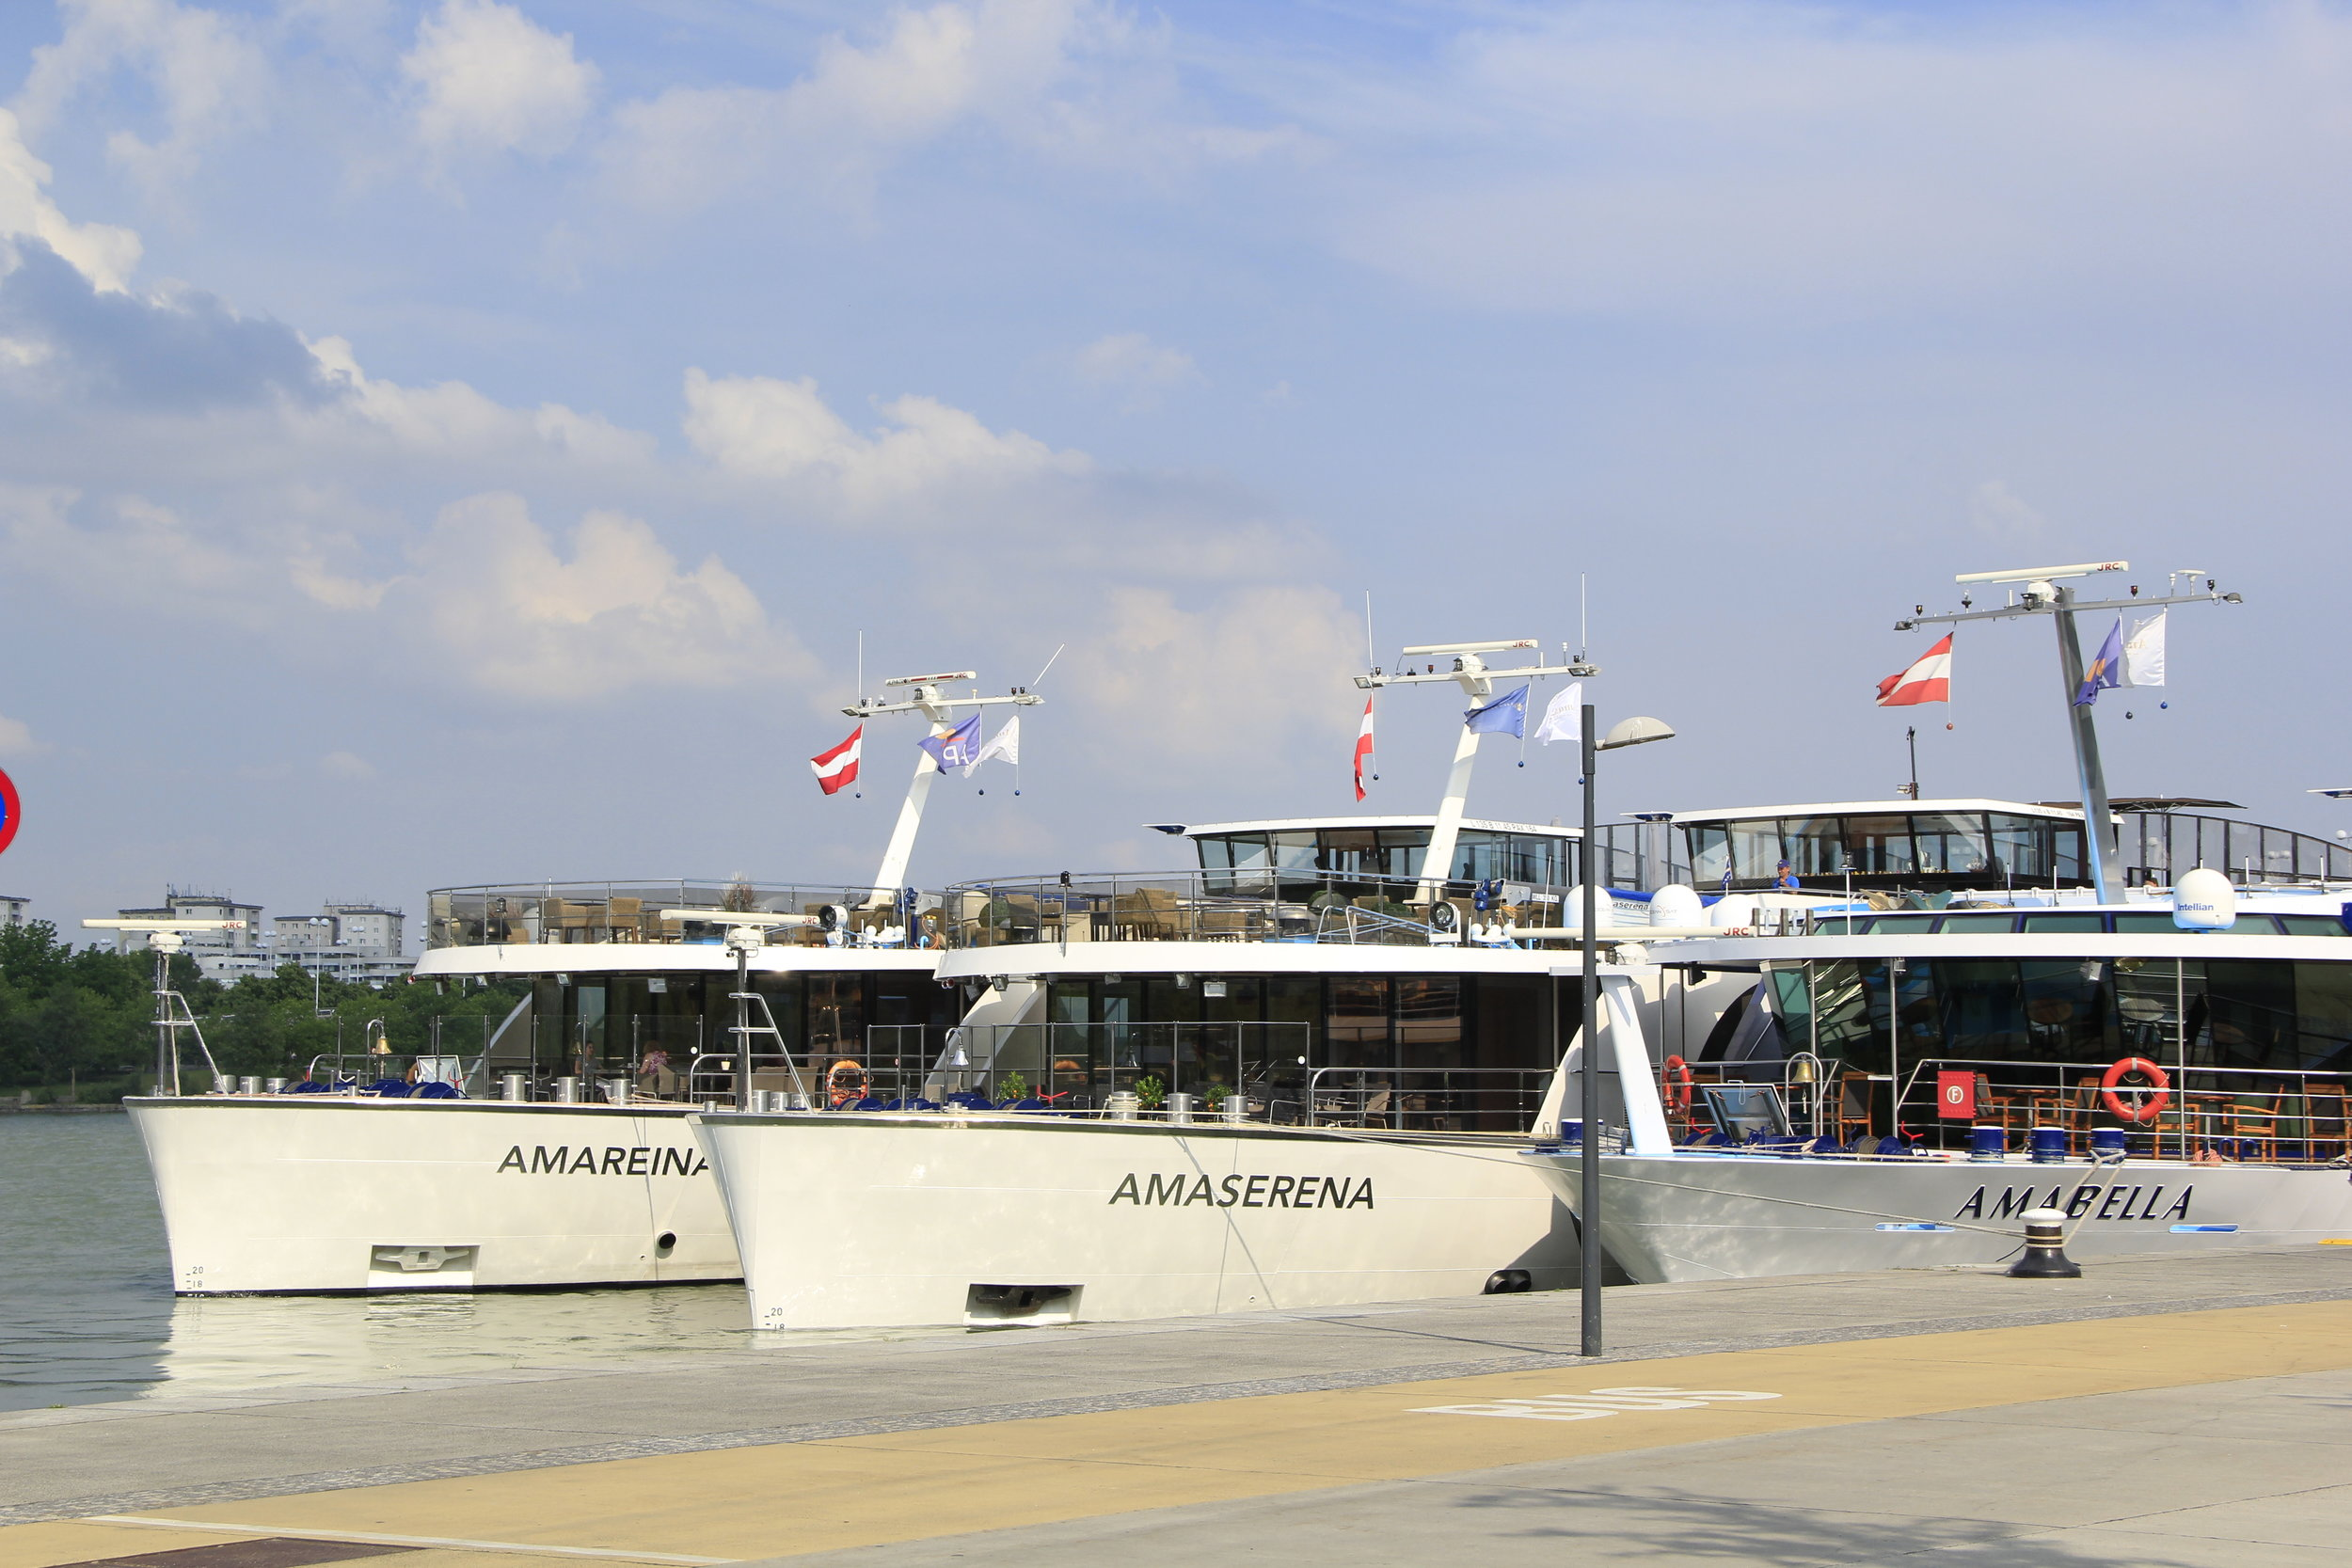 3 AmaWaterways longships docked in Vienna—most riverships are this size or shorter